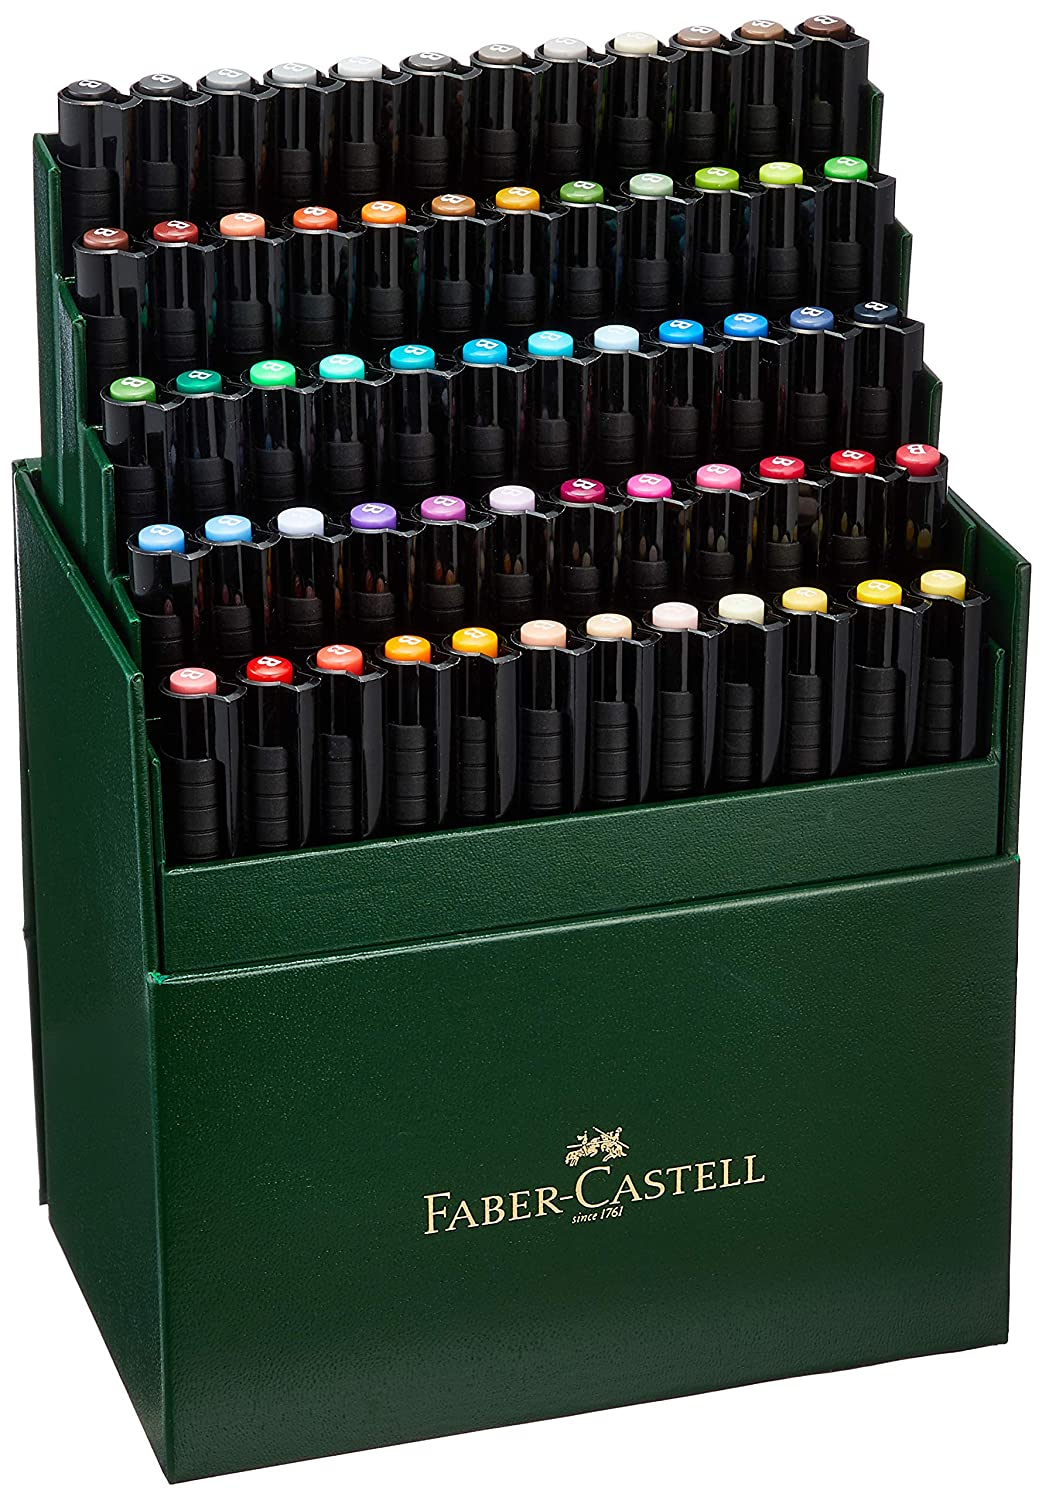 Faber Castell 60 Piece Pitt Artist Brush Pen Set Gift Box Notions - In Network FC167150